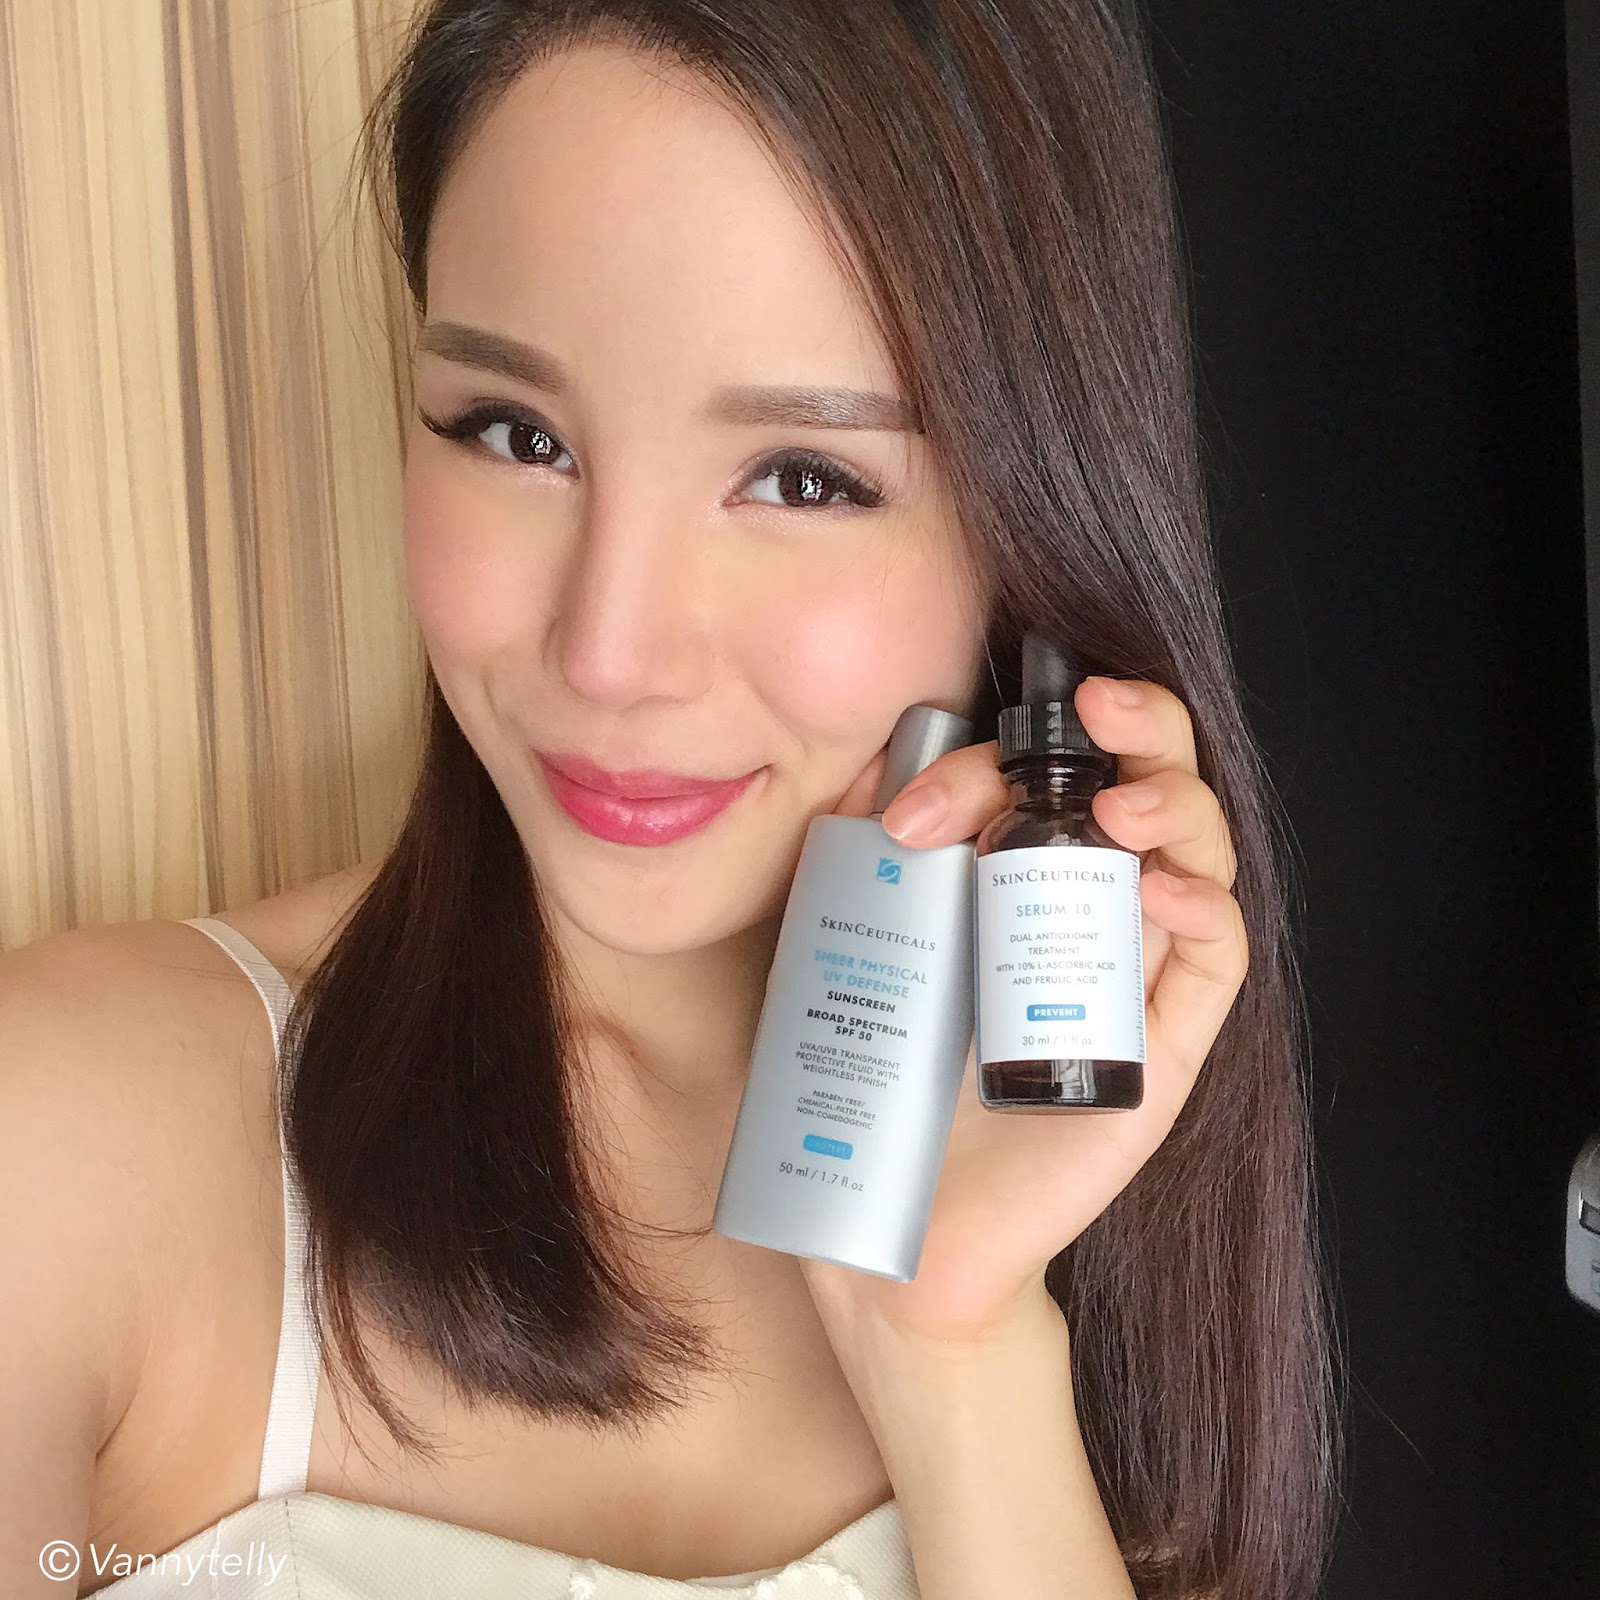 Vanny S Telling Everything Beauty Brand Review Part 2 Skinceuticals The Best Antioxidant Skincare Brand